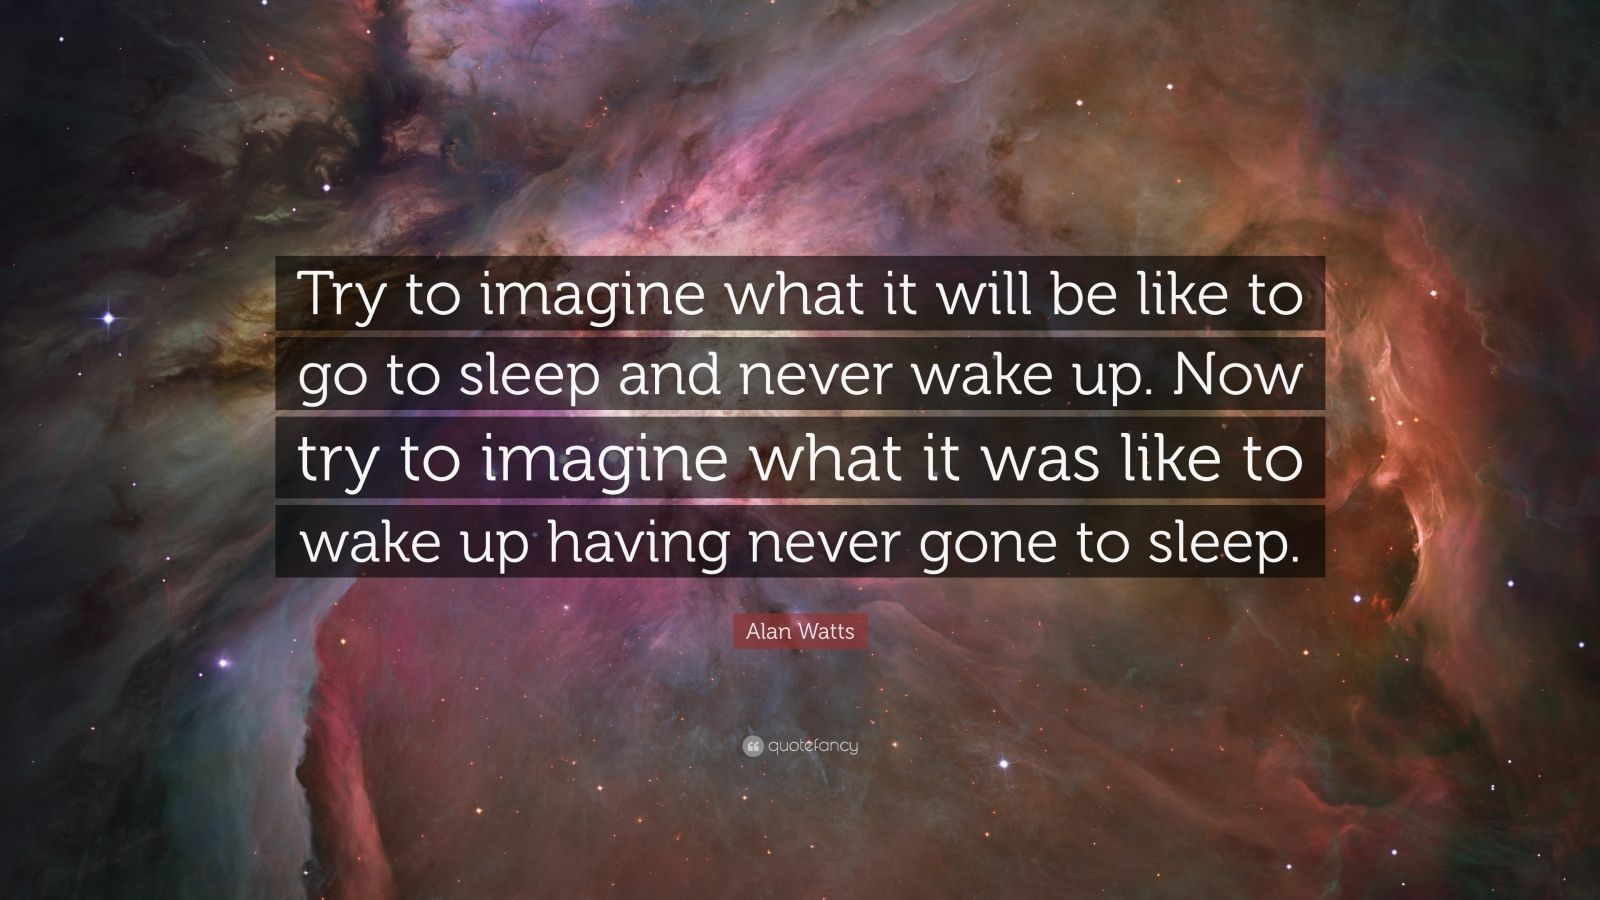 """Alan Watts Quote: """"Try to imagine what it will be like to go to sleep and never wake up. Now try to imagine what it was like to wake up having never gone to sleep."""""""